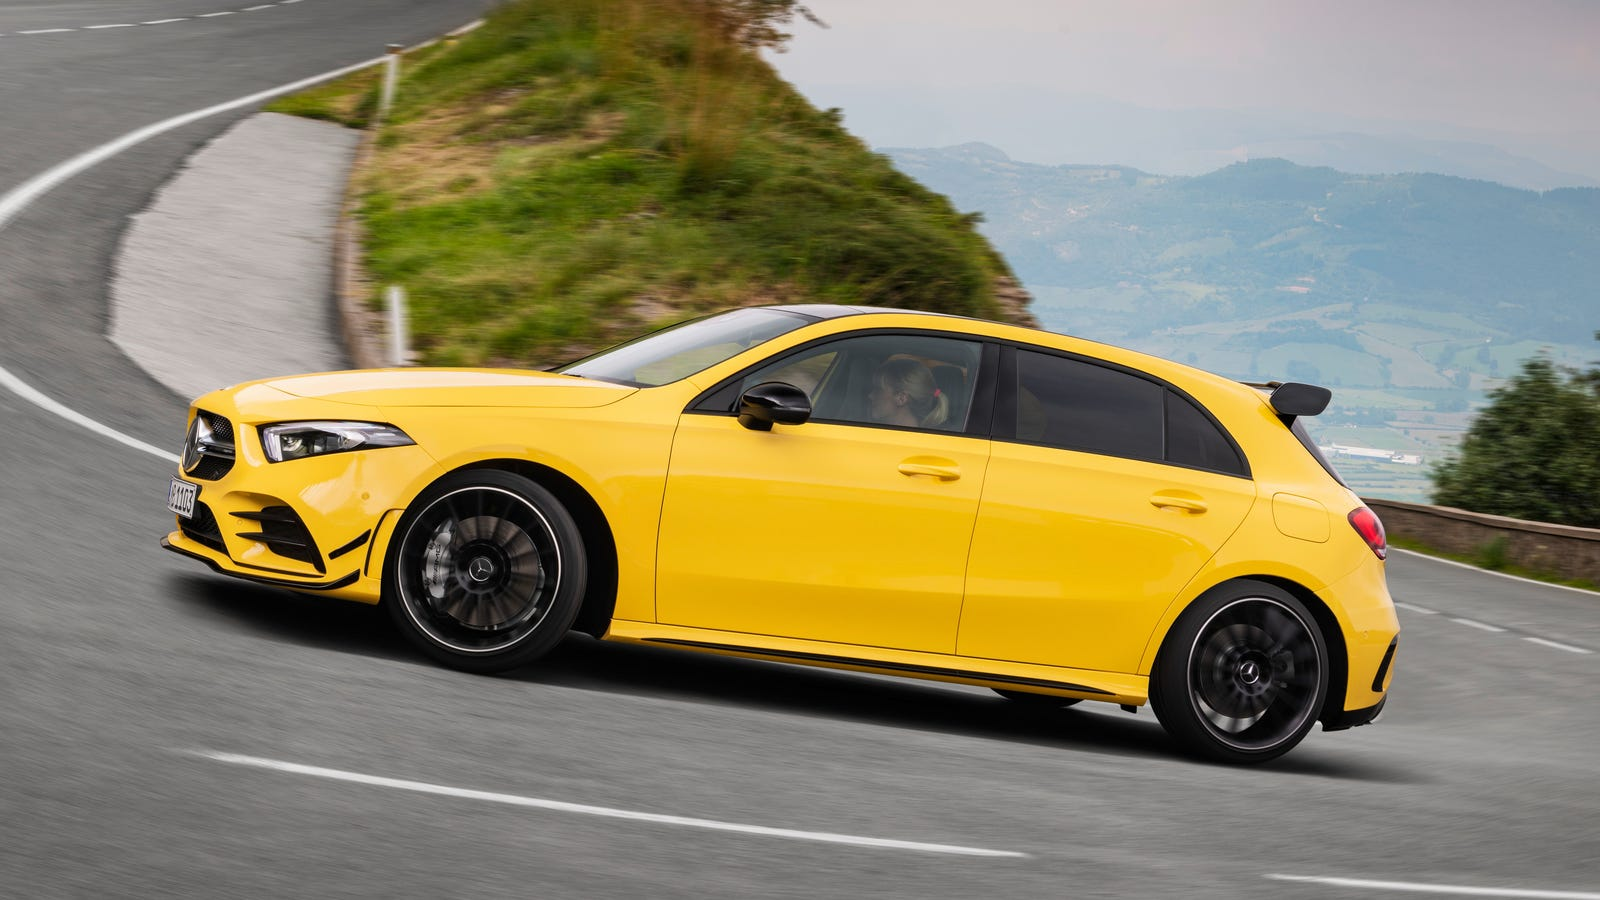 Mercedes A45 Amg Price >> 2019 Mercedes-AMG A35: Benz's New Hot Hatch Has Toys for Your Next Track Day